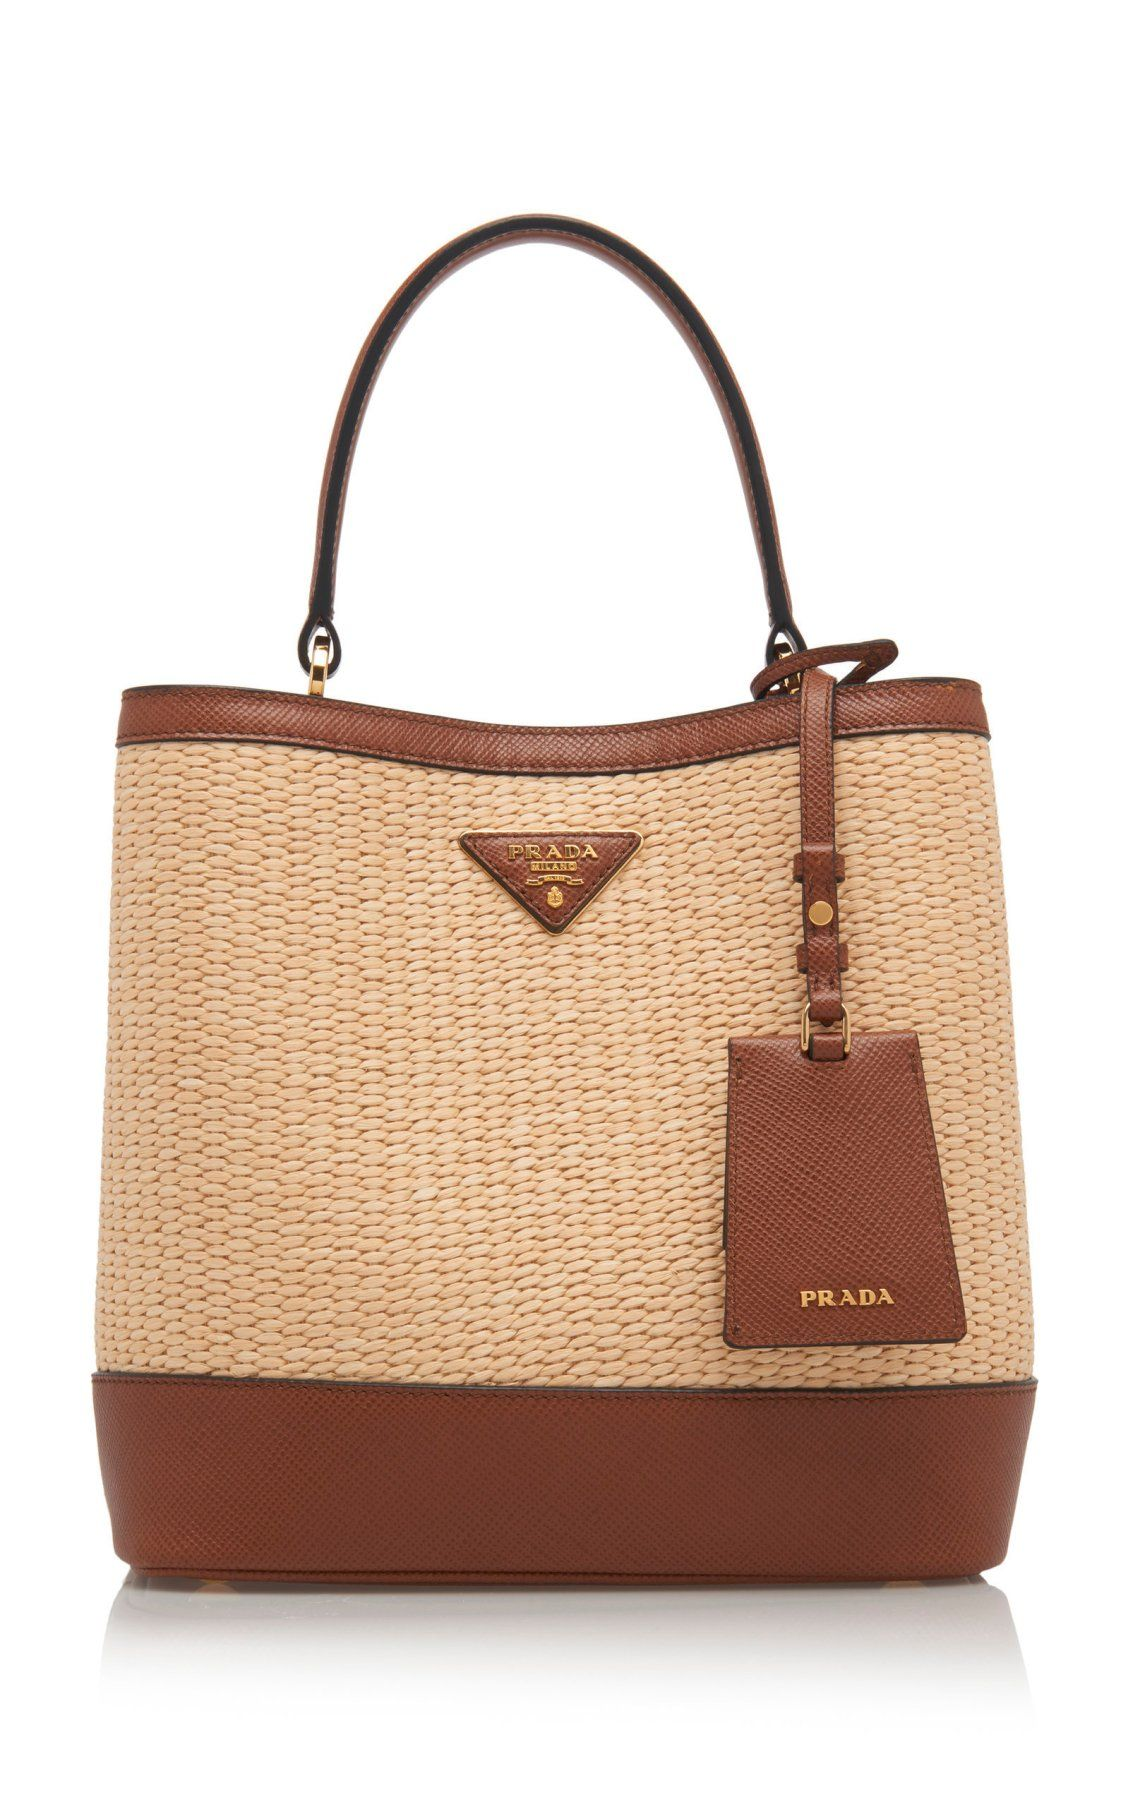 077c2e15c684 Medium Raffia and Saffiano Leather Double Bucket Bag by Prada Spring Summer  2019